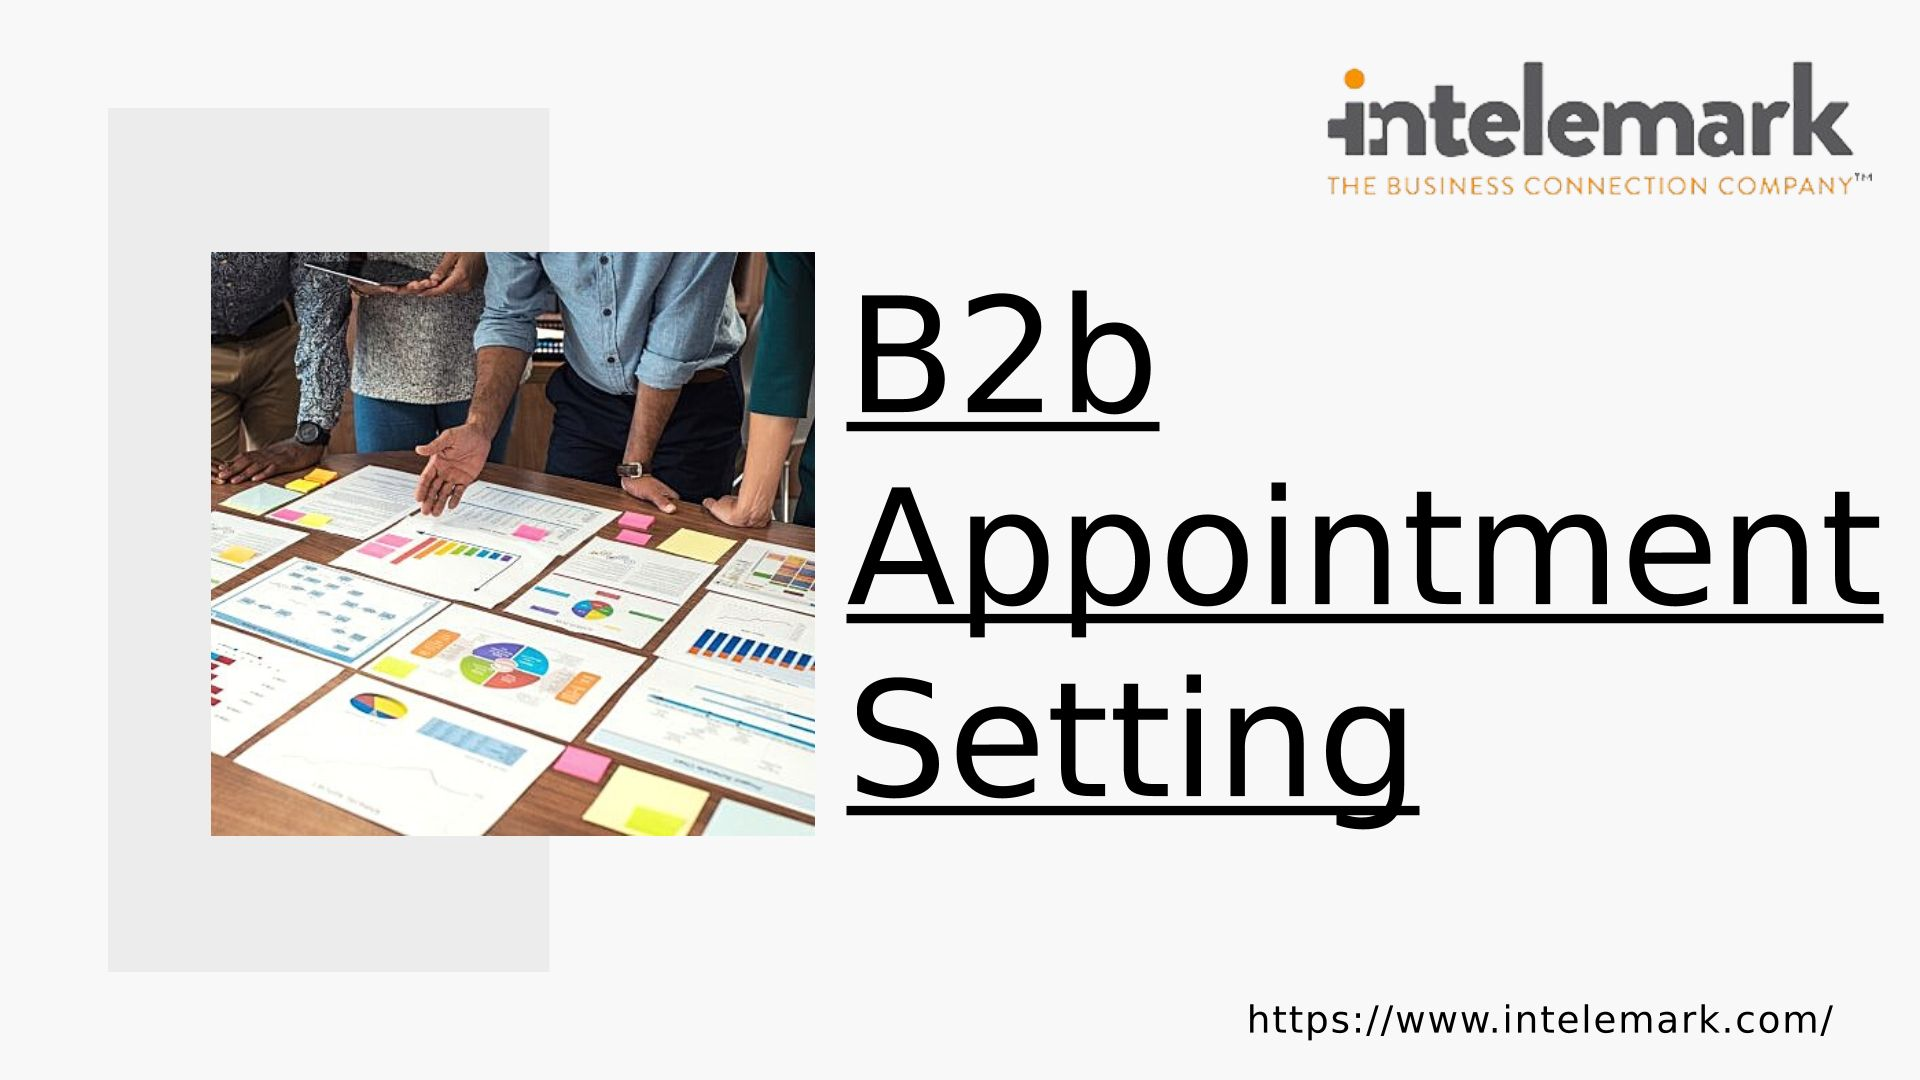 Intelemark best in b2b appointment setting